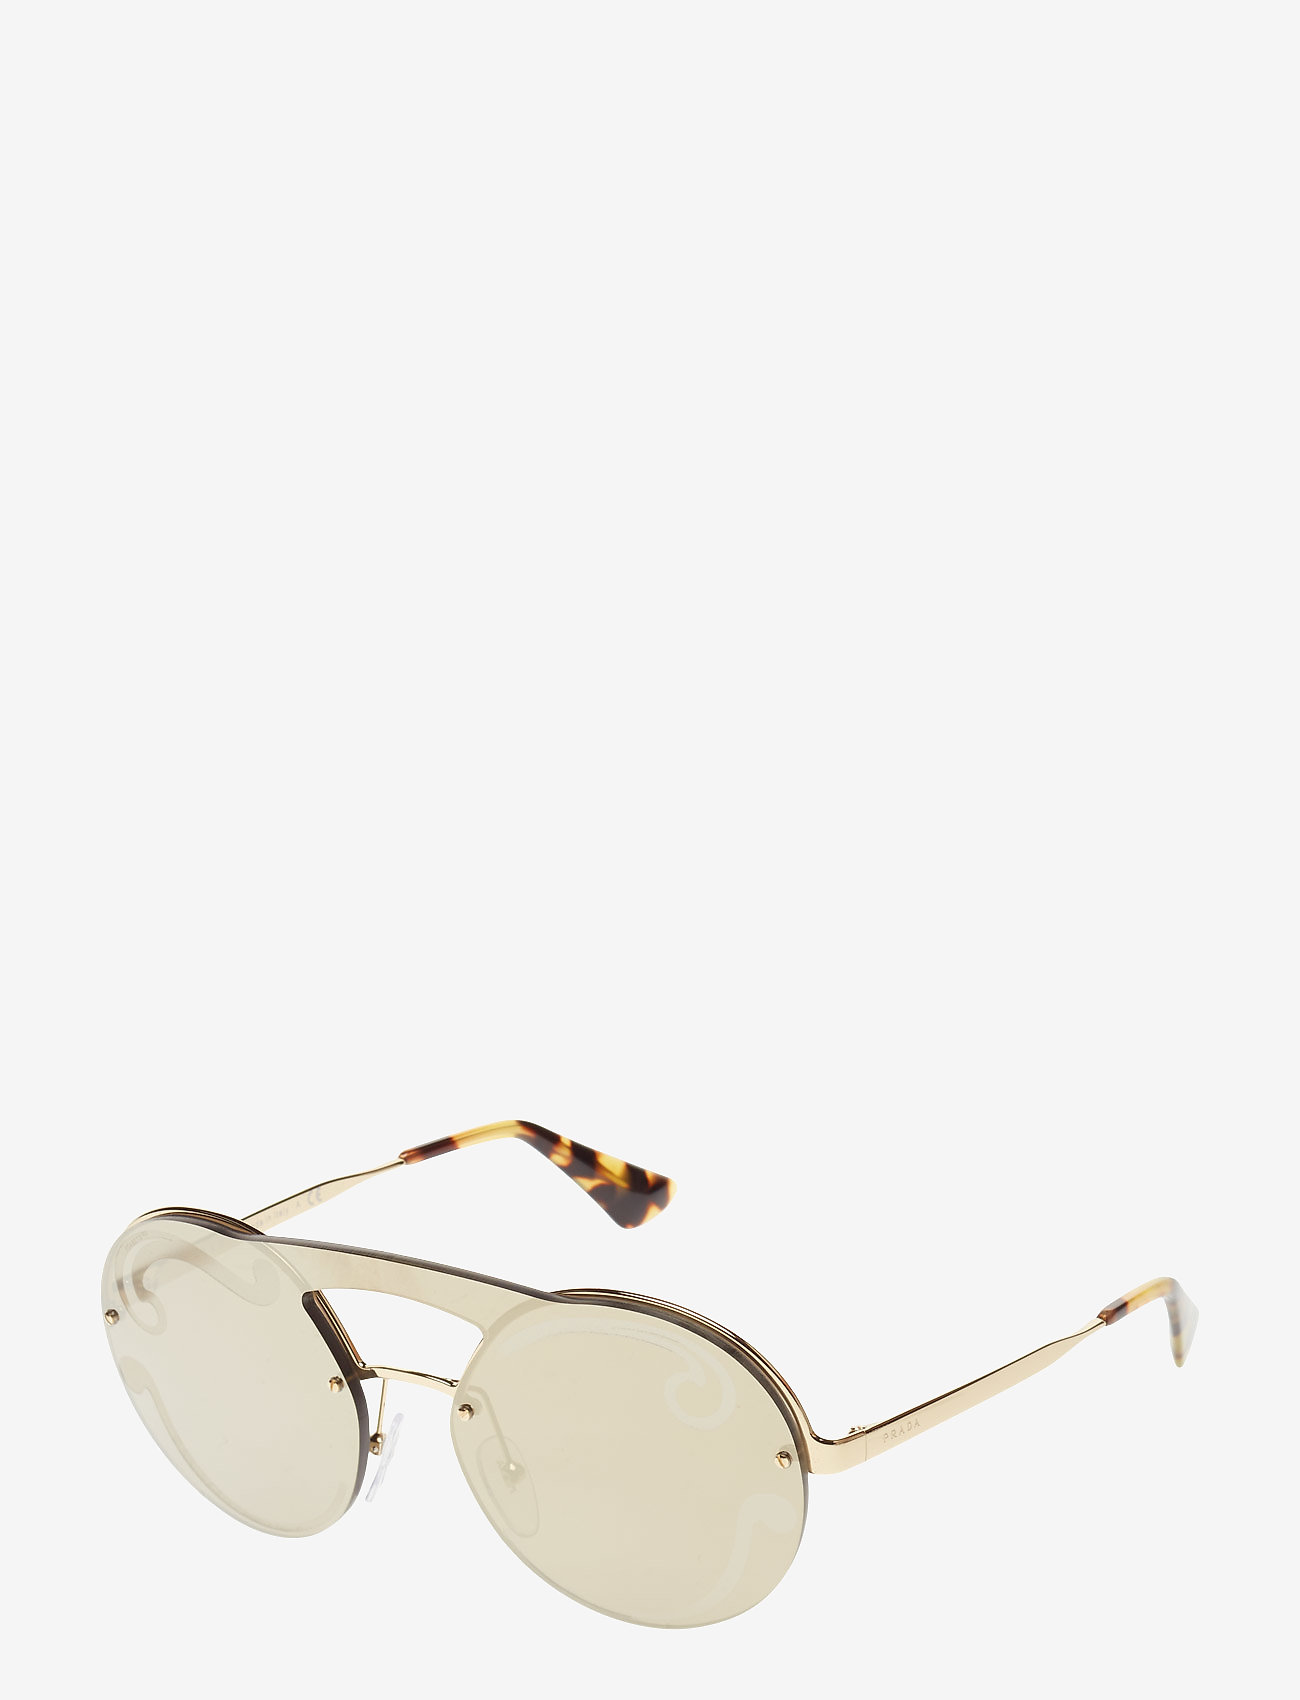 Prada Sunglasses - Not Defined - round frame - pale gold - 1